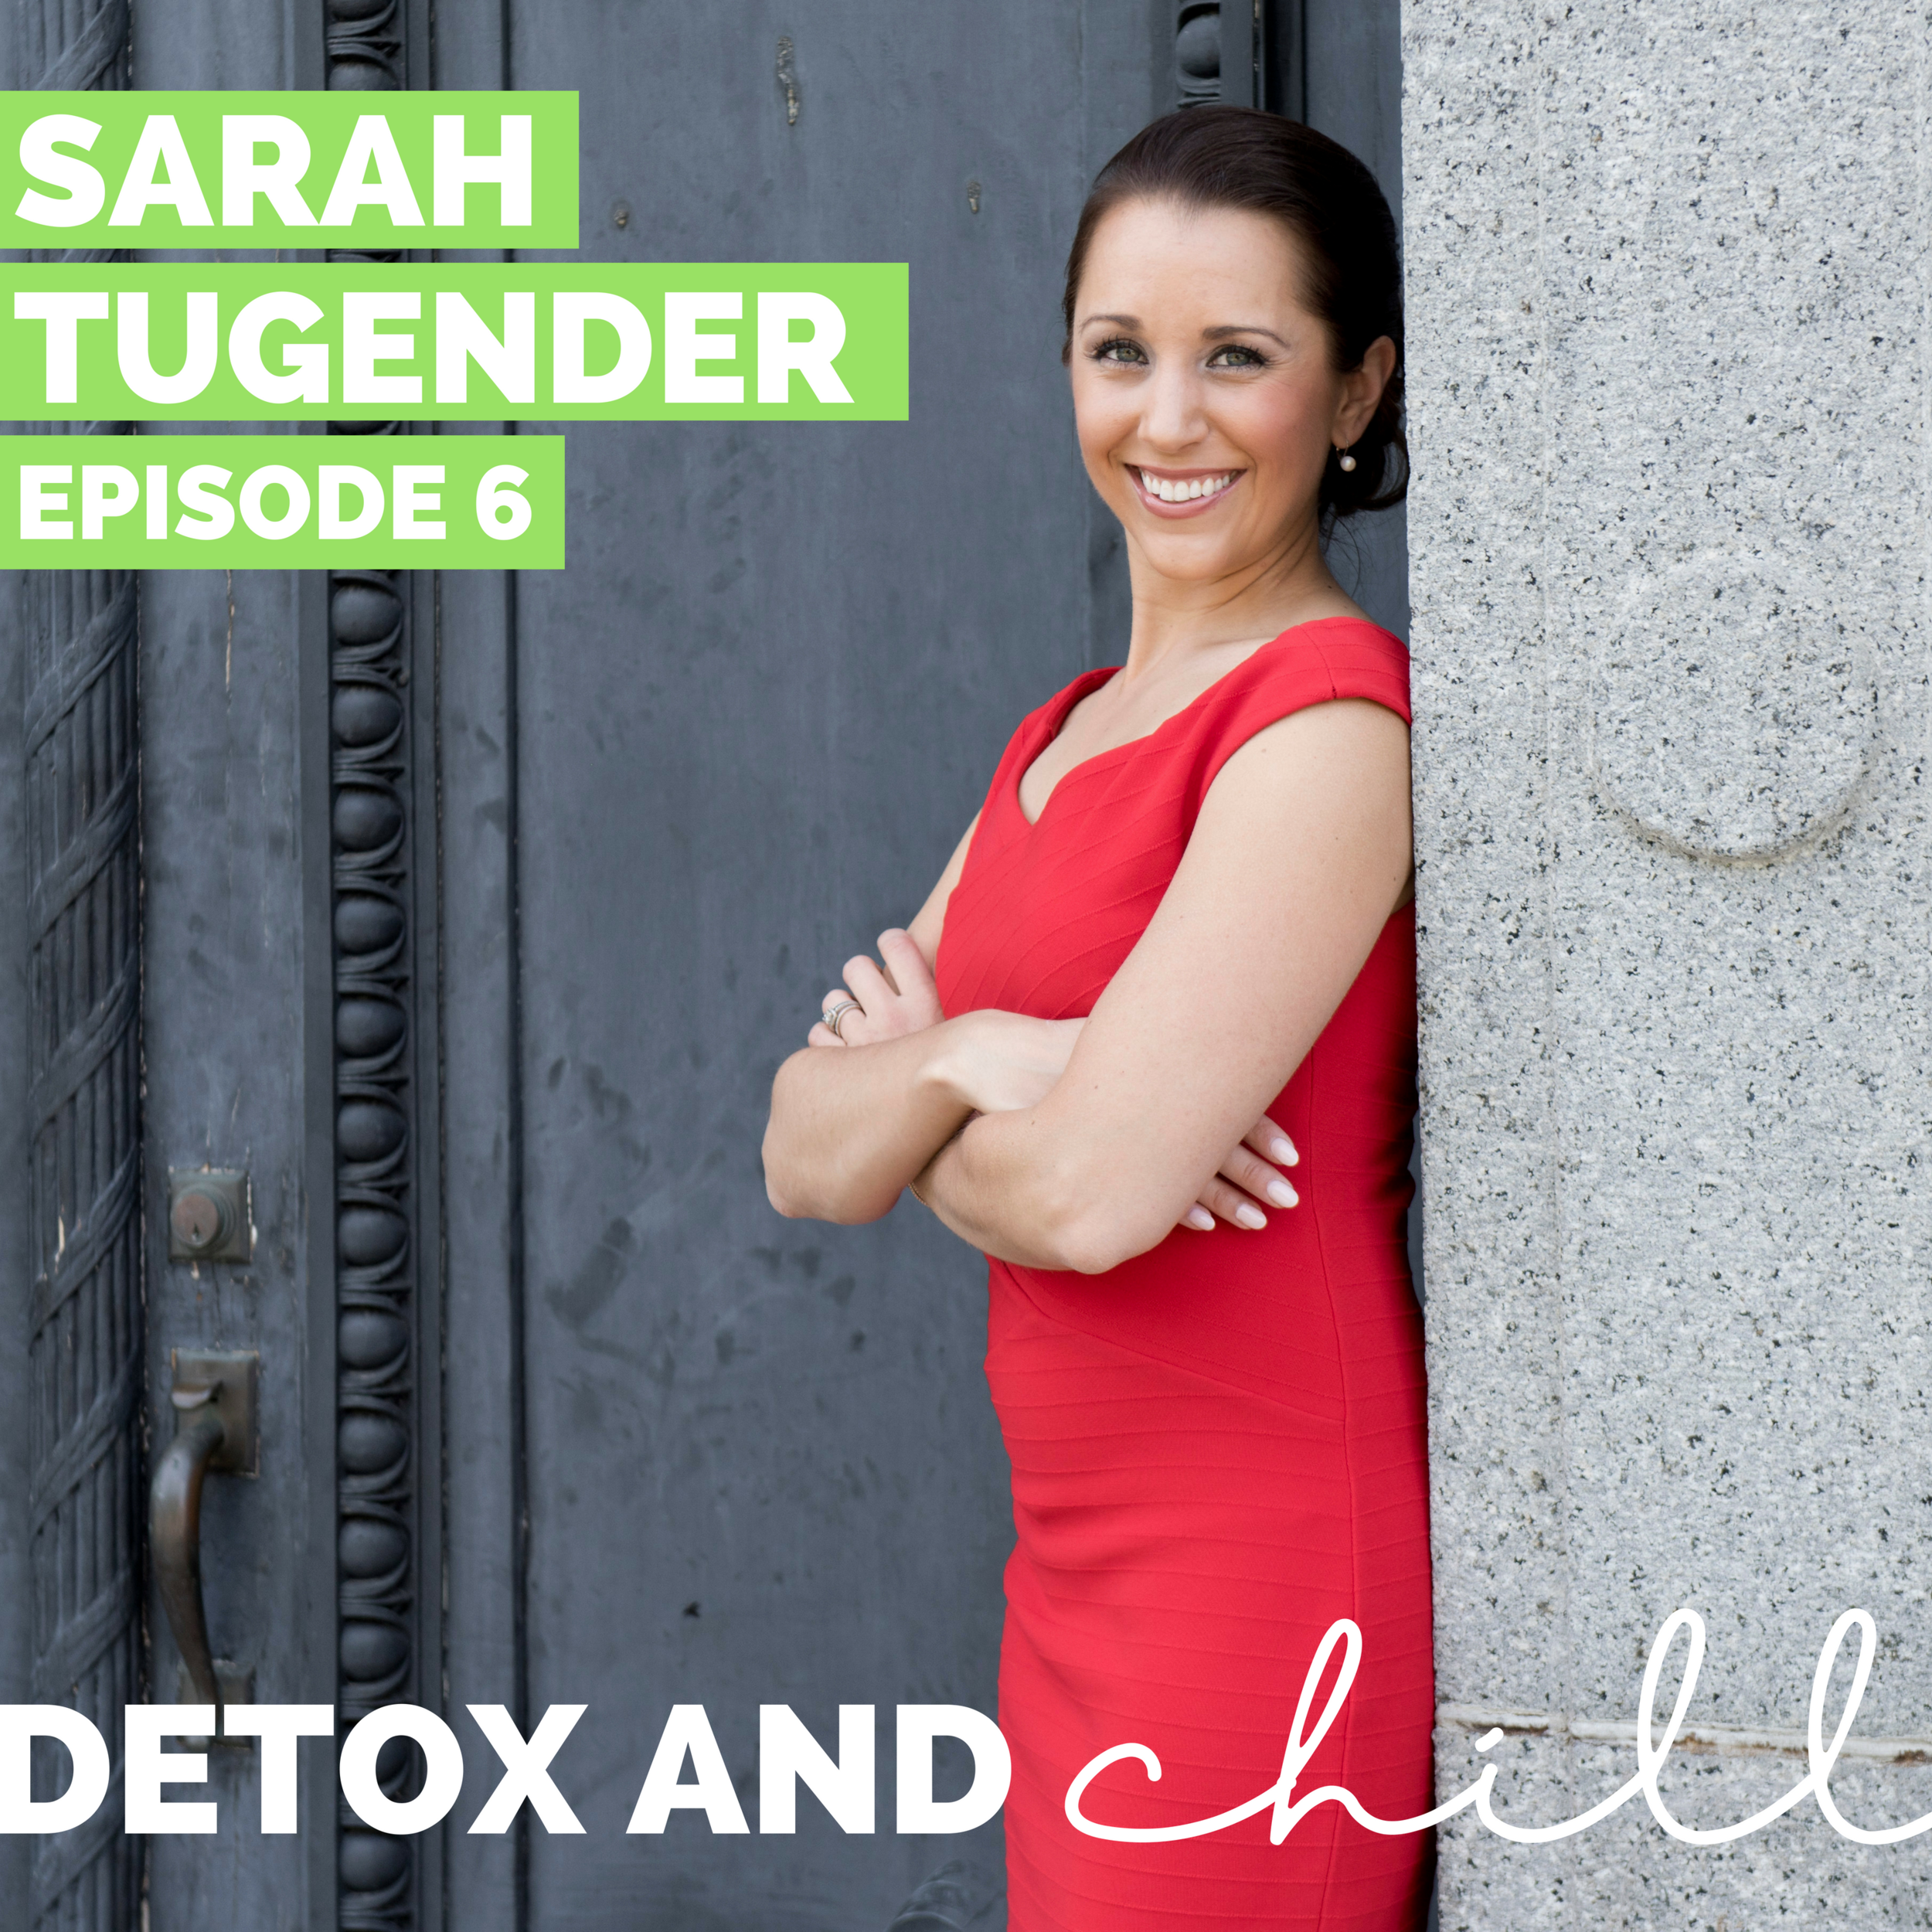 Episode #6: Sarah Tugender // Trainer, Speaker, & Entrepreneur // There's No Such Thing as Balance - This week on the podcast we speak with a true #girlboss, Sarah Tugender. As a business-woman, mother, and entrepreneur, Sarah is truly a powerhouse and one of the MOST well-spoken people we've ever talked to.We talk about balance (and how that doesn't exist), confidence, and a lot of quick and healthy recipes that she manages to fit into her schedule. We're SO excited to have Sarah as a guest -- let us know what you appreciated most about the episode in the comments below!Follow Sarah on Facebookand at www.SarahTugender.comand on Instagram @PowerByPlants!!